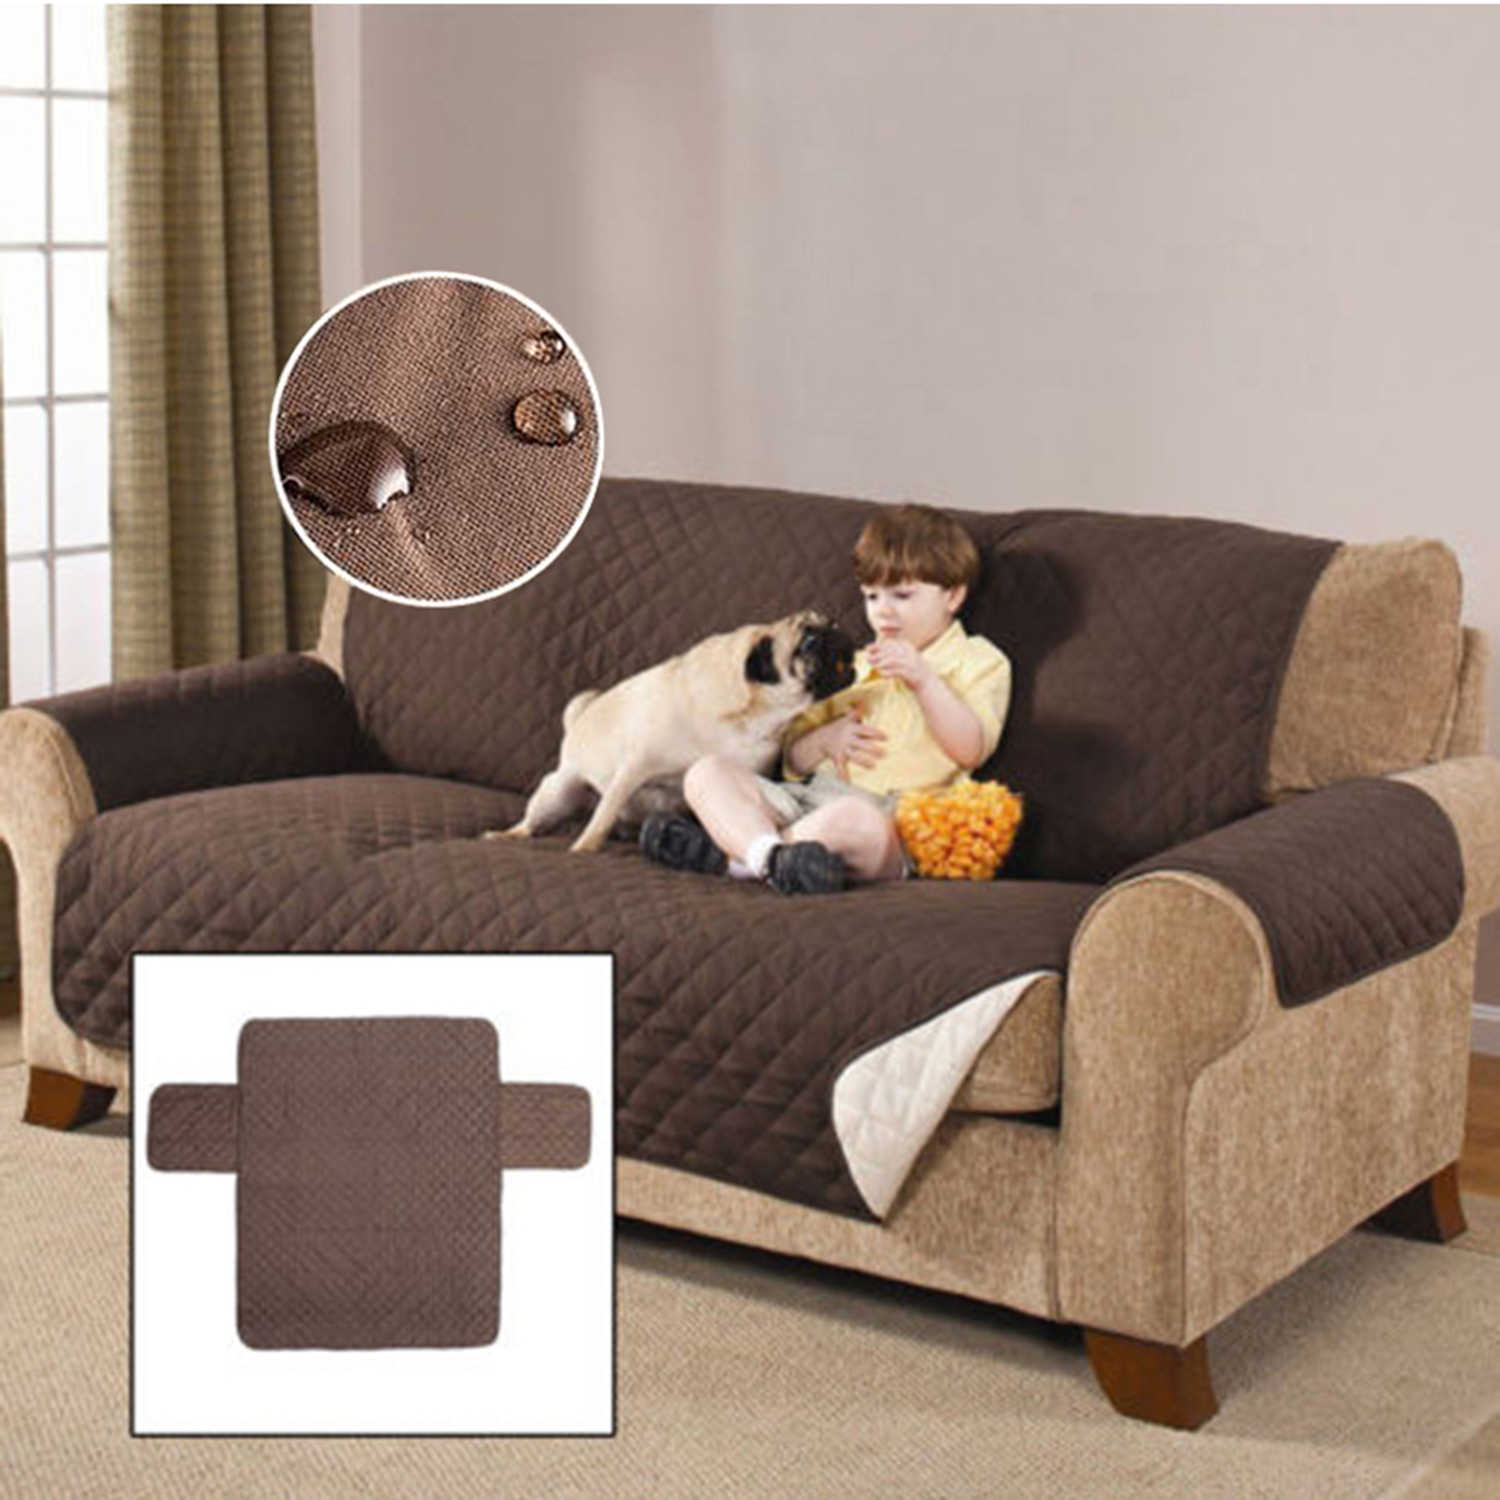 Sofa Couch Cover Chair Throw Pet Dog Kids Mat Furniture Warm Protector Cover Reversible Washable Removable Armrest Slipcovers